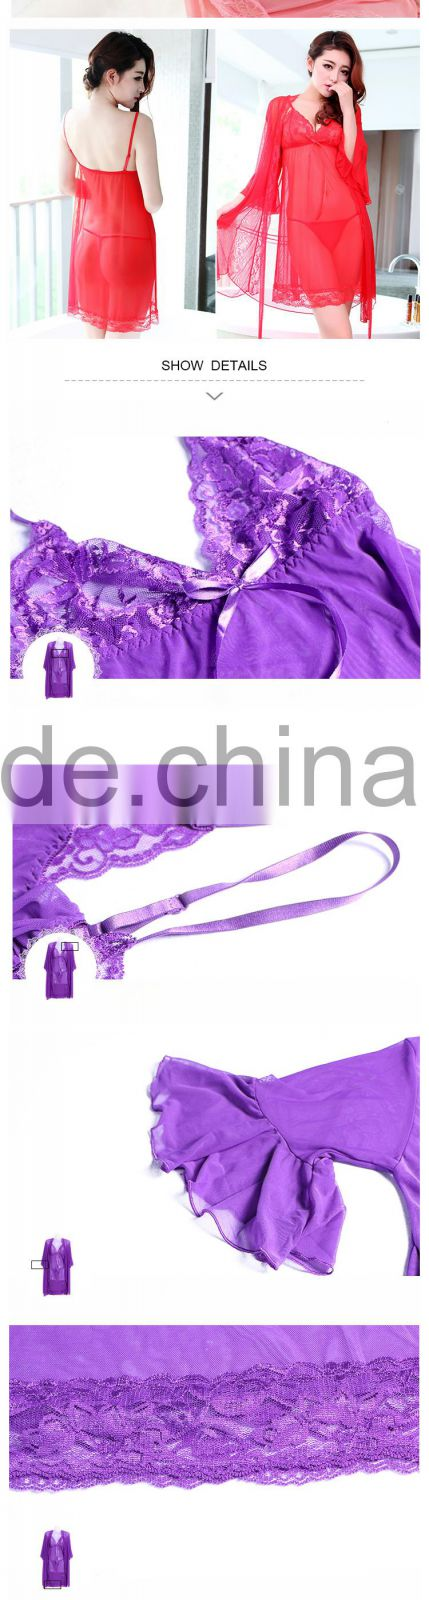 HSZ-3002 Sexy hot fashion show lingerie&good quality teddy lingerie sexy hot fashion show babydoll lingerie